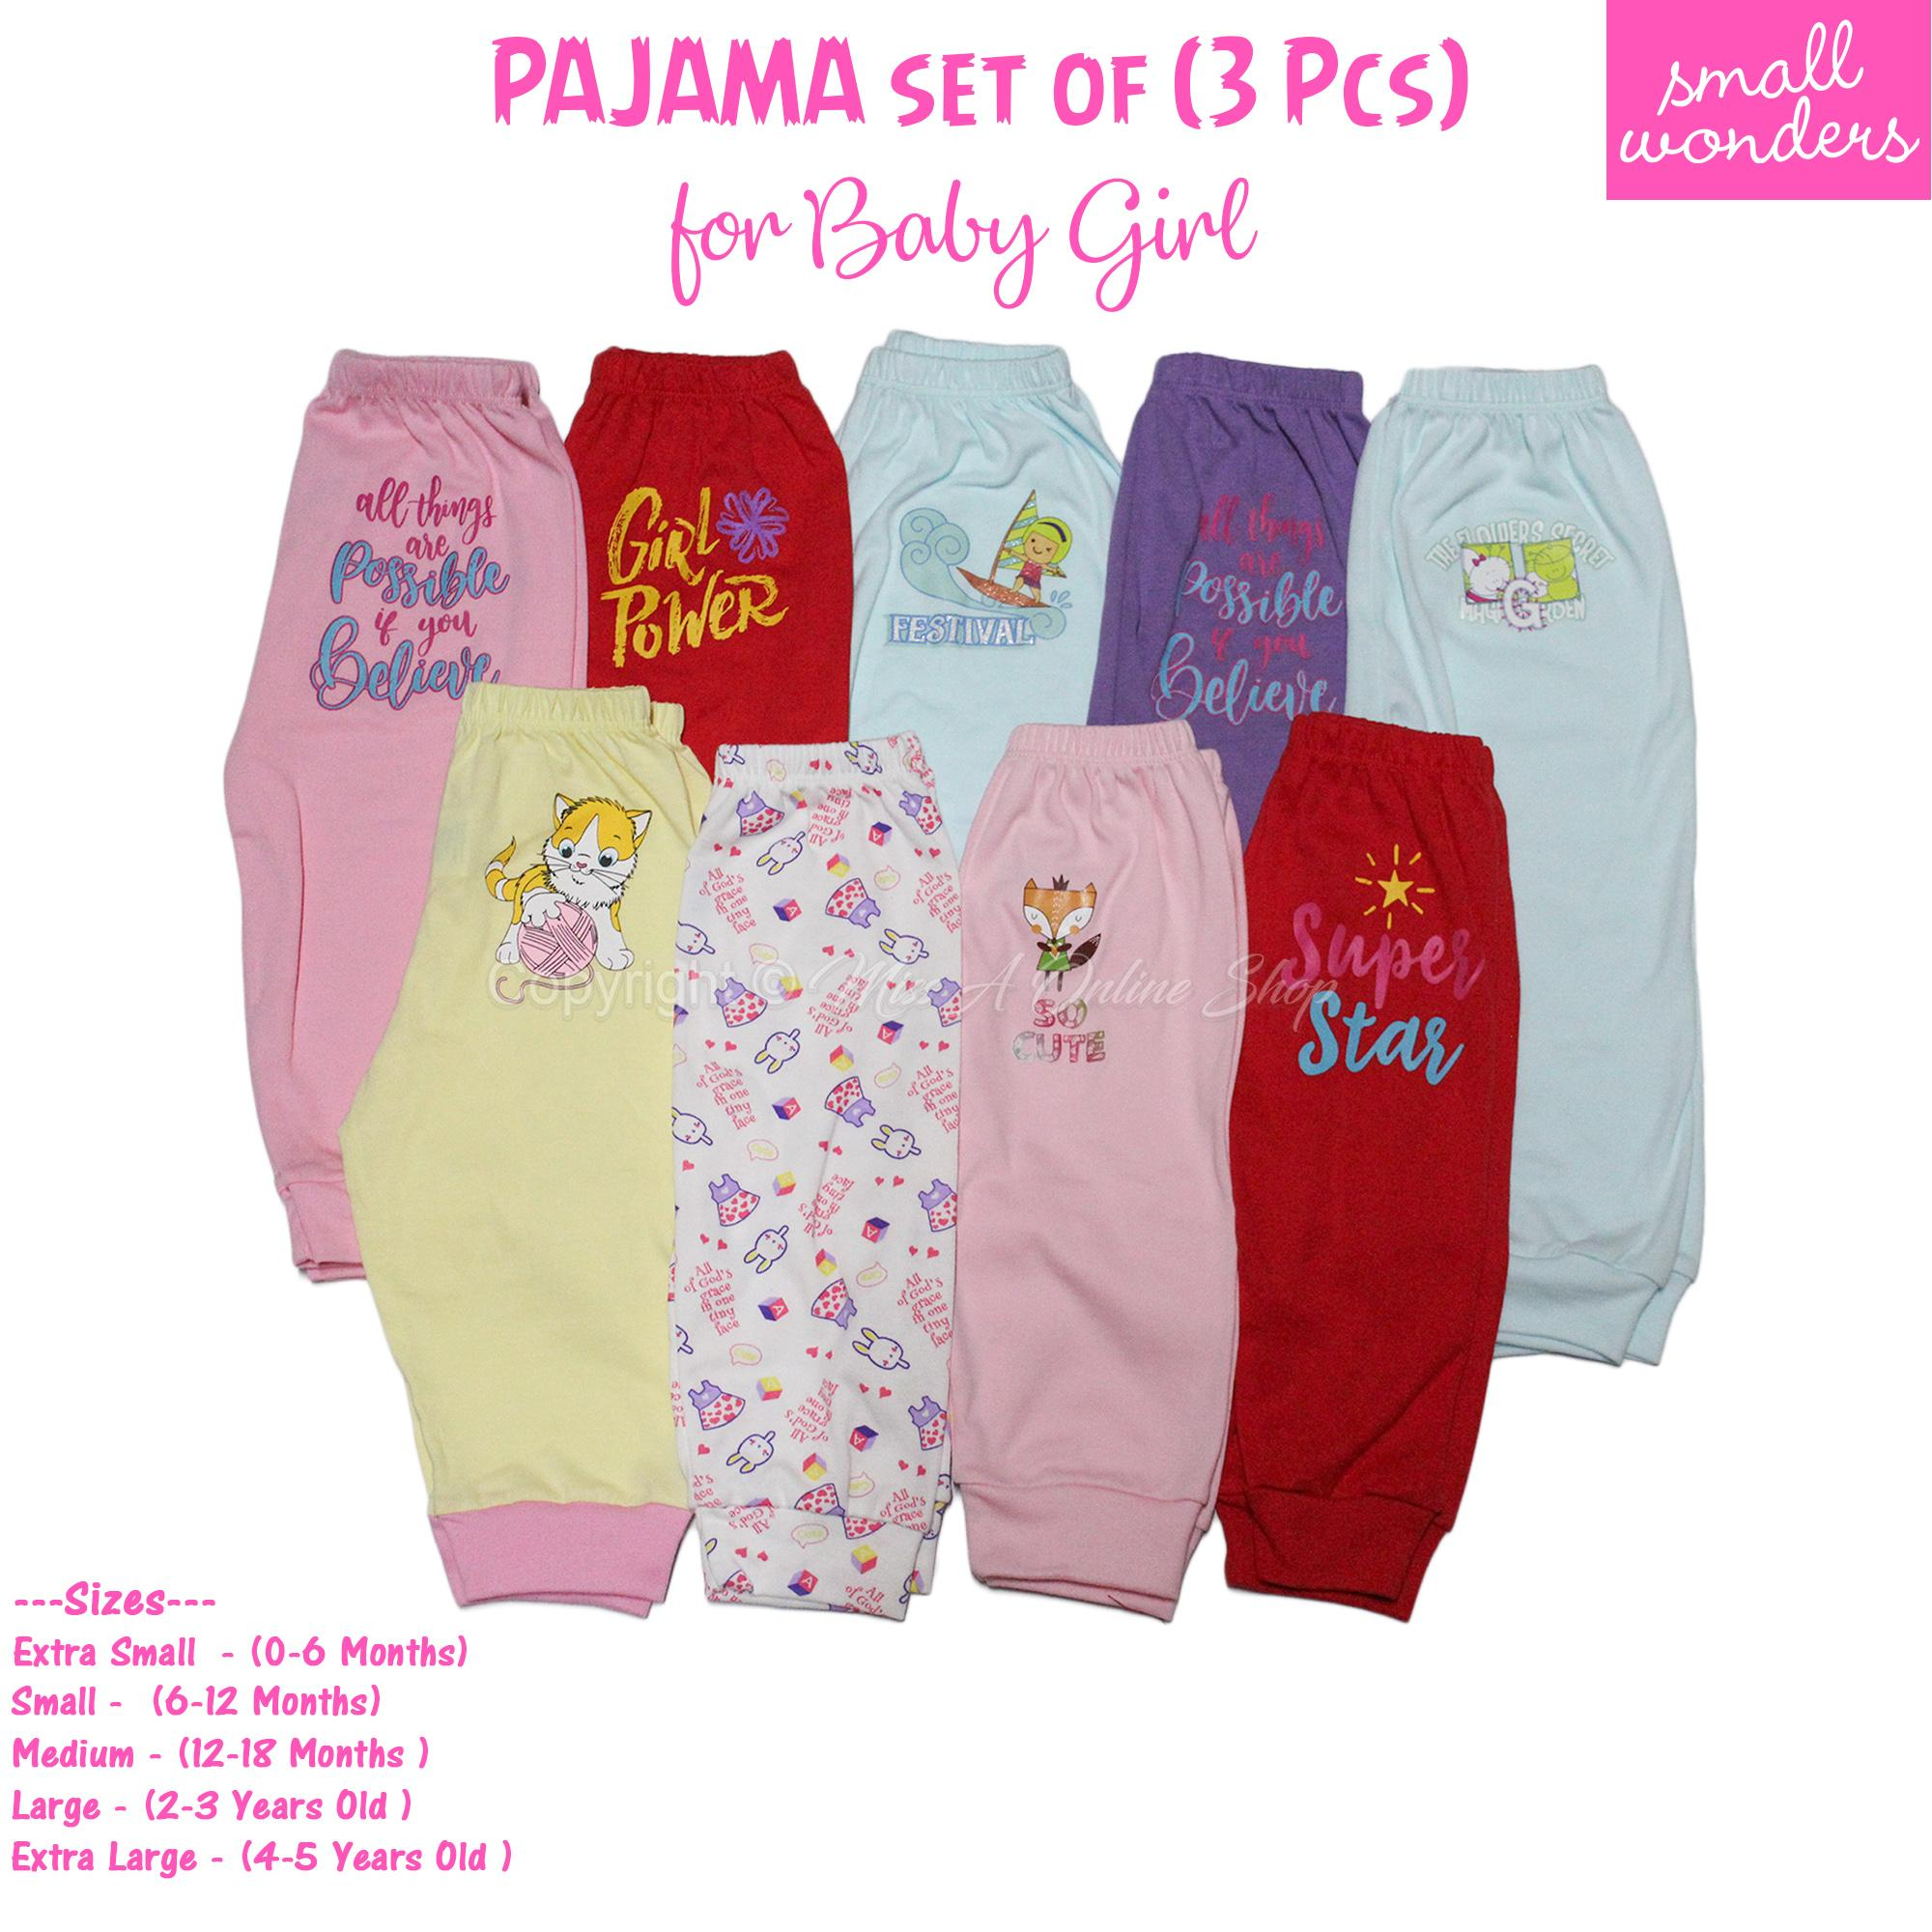 e71b55ef36 Girls Pajama Sets for sale - Kids Pajamas for Girls online brands ...